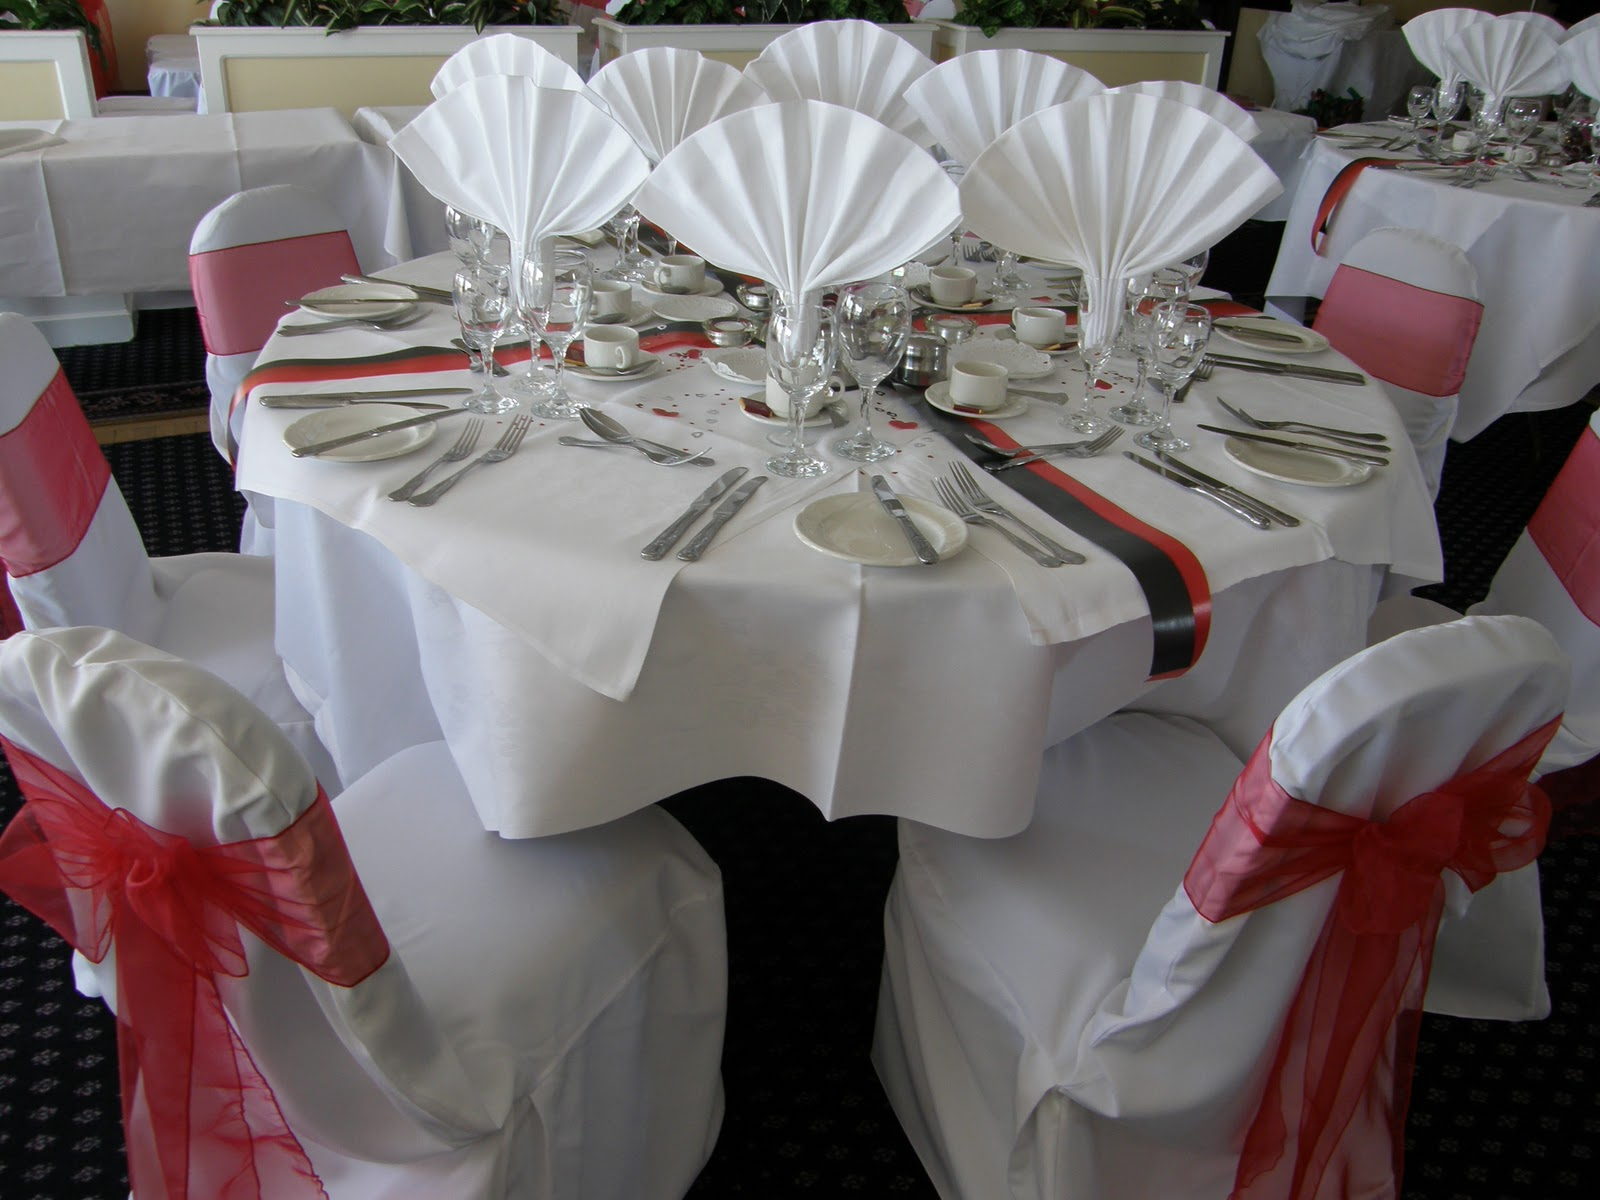 Wedding Chair Covers Devon Red Outdoor Cushions All Angles And Venue Dressing Park Hotel